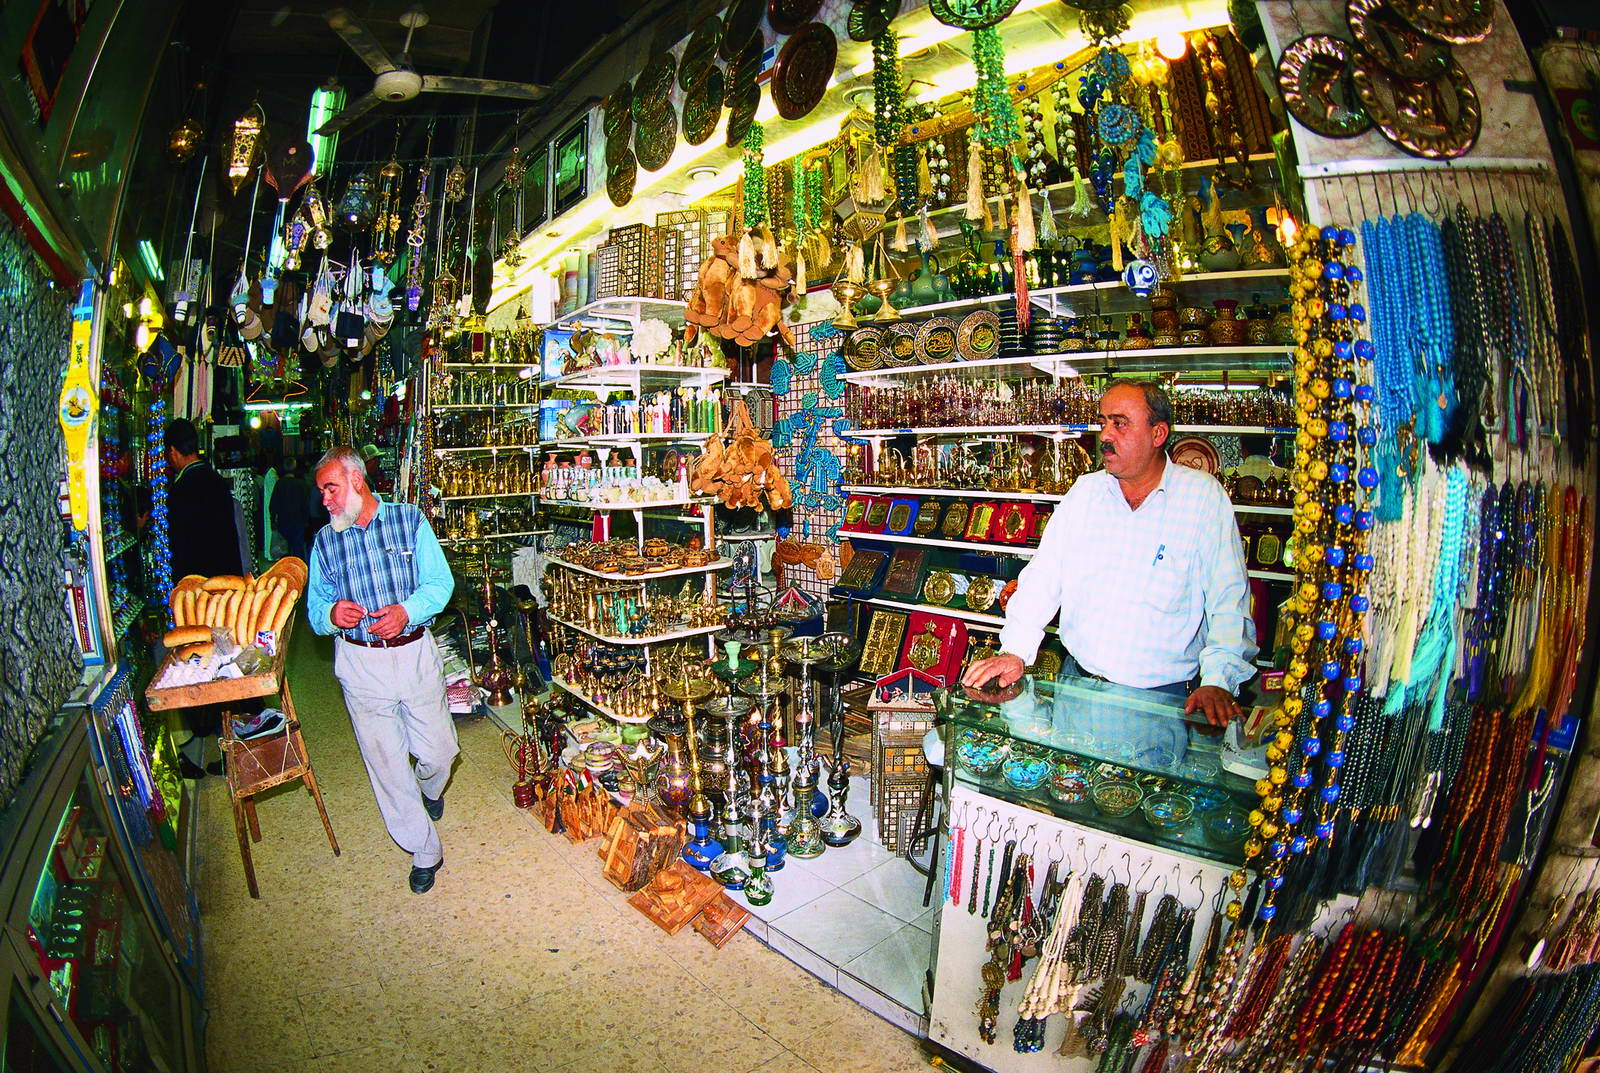 amman tour shopping 1117 20170502 1288501904